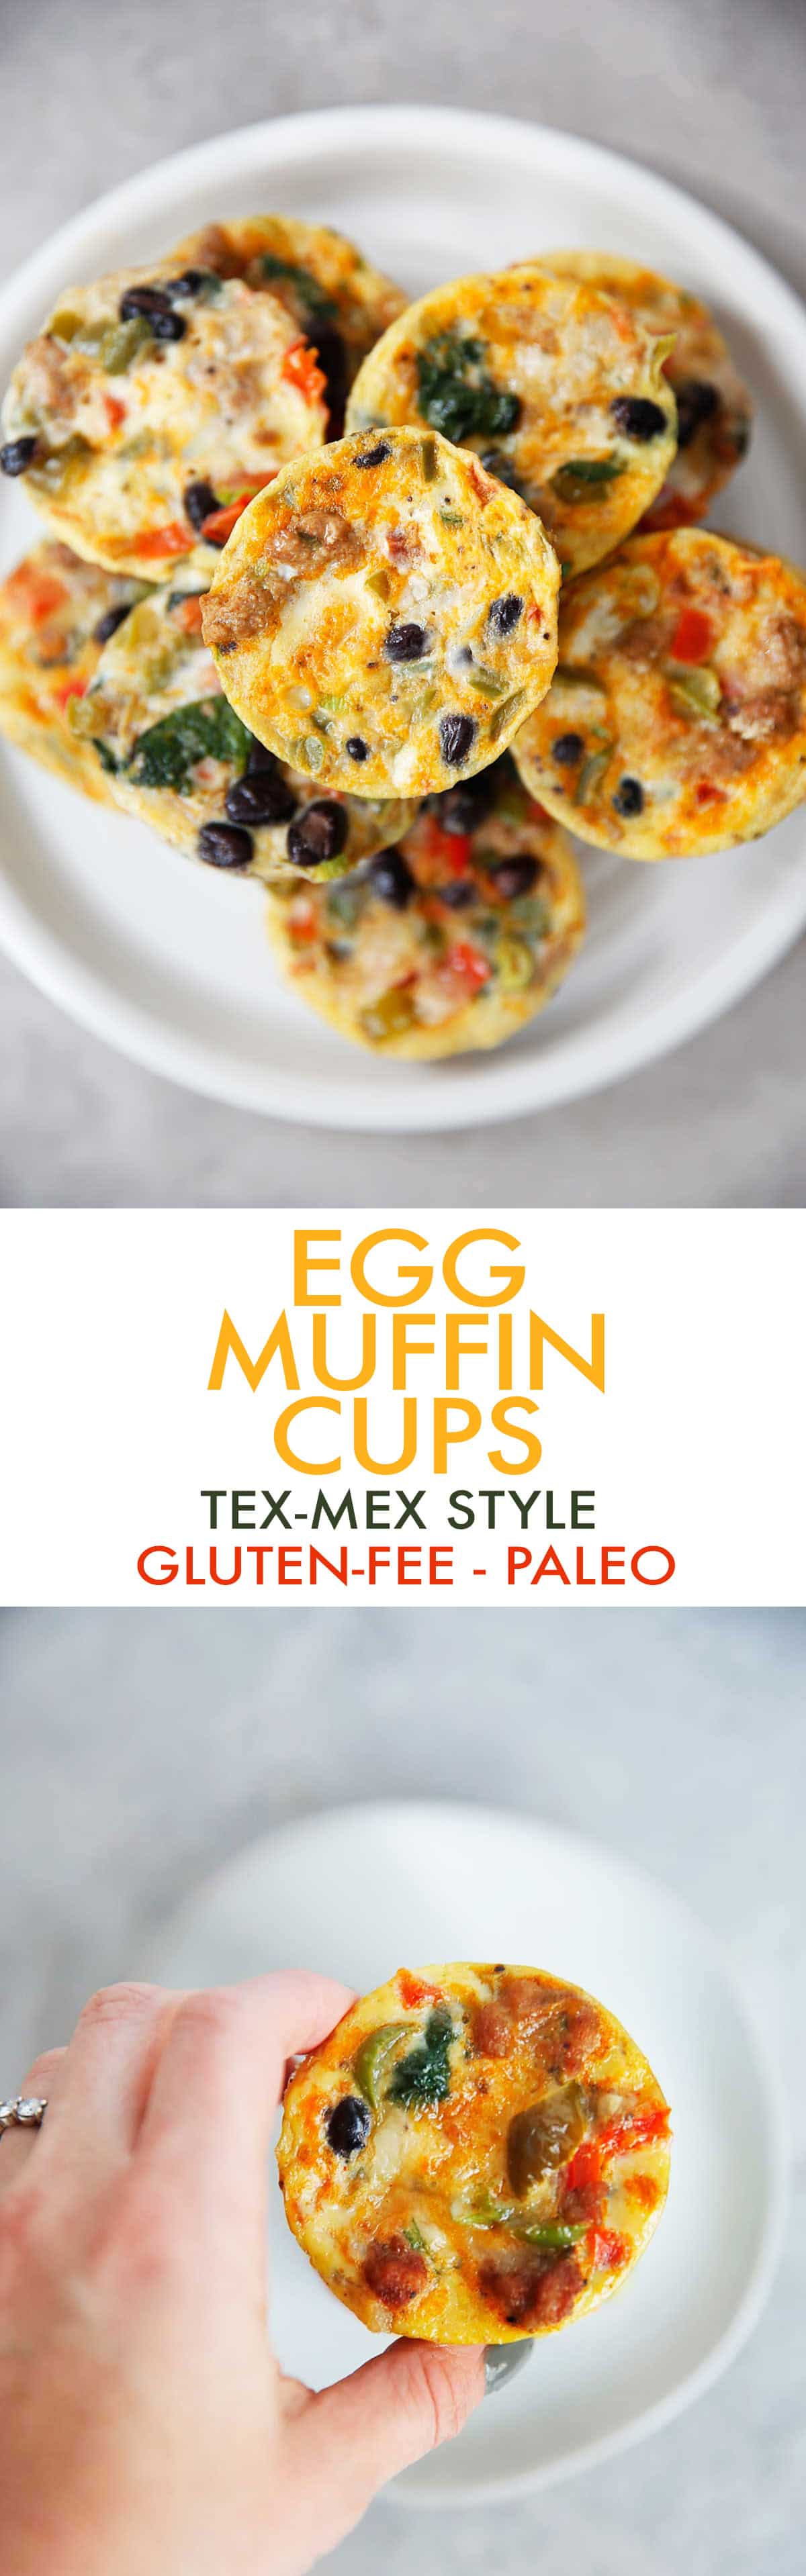 Egg Muffin Cups With Turkey And Tex Mex Flavors